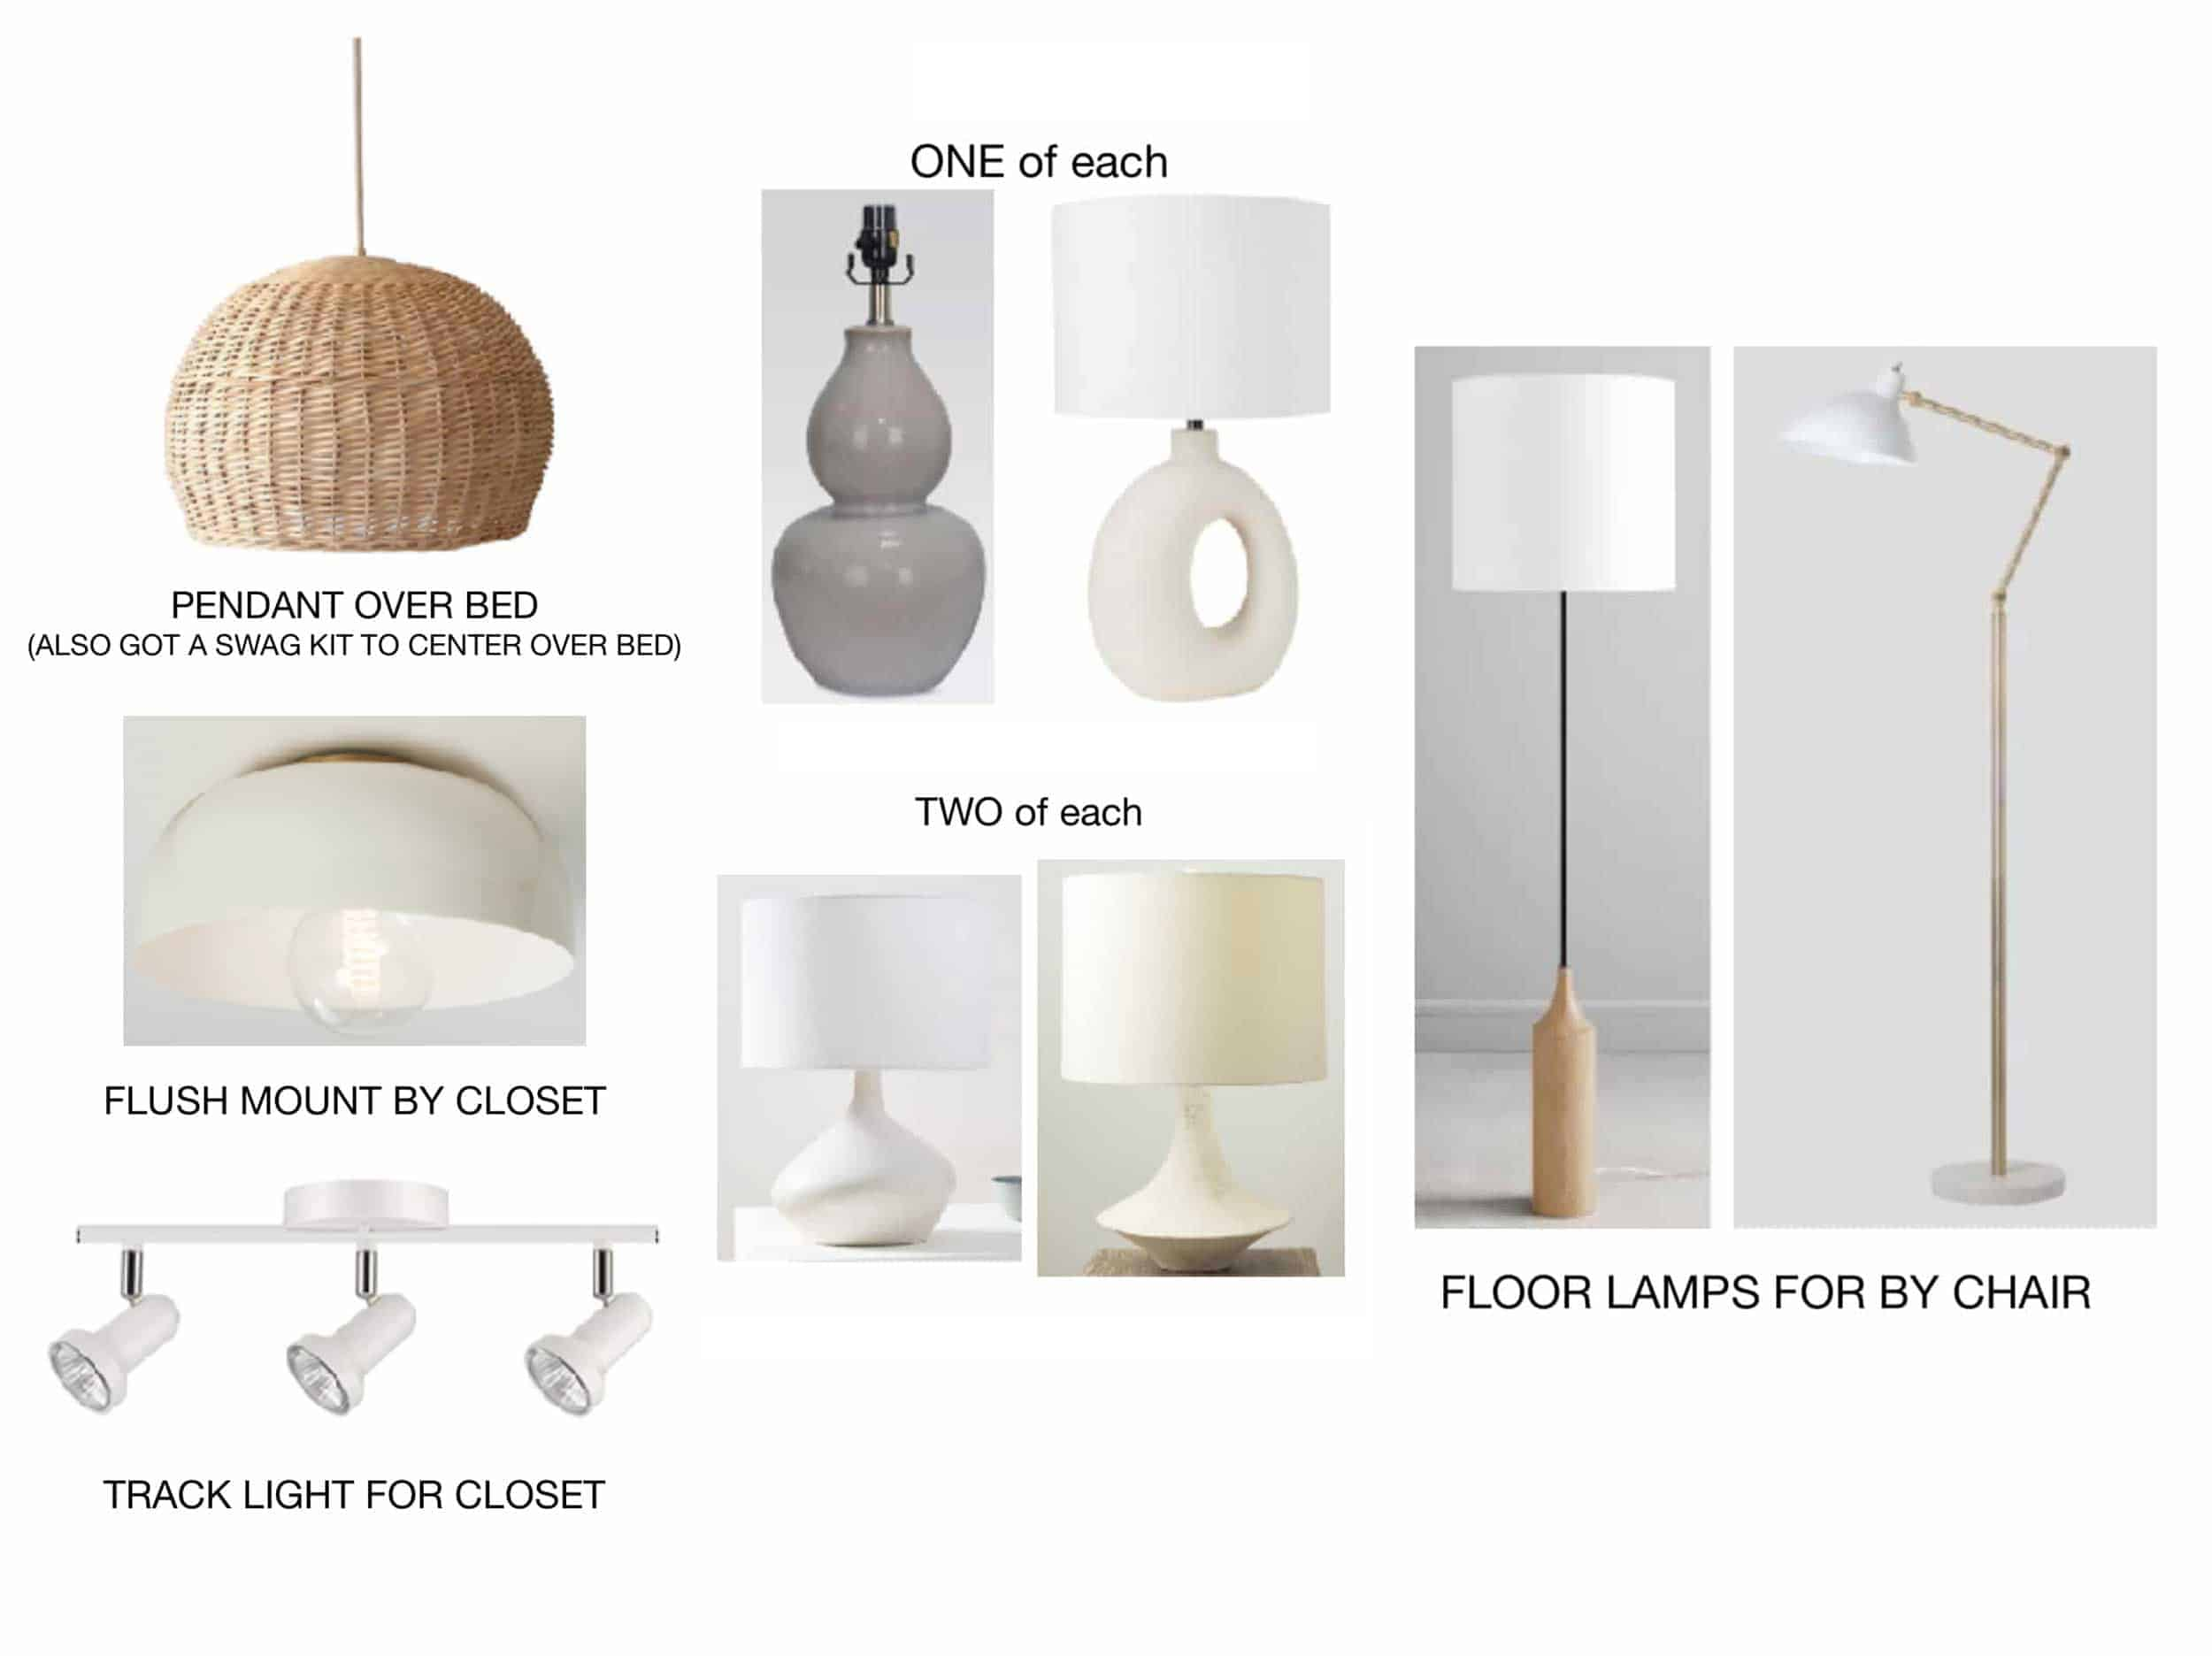 Velux Accessories Options For Emily To Look Over1